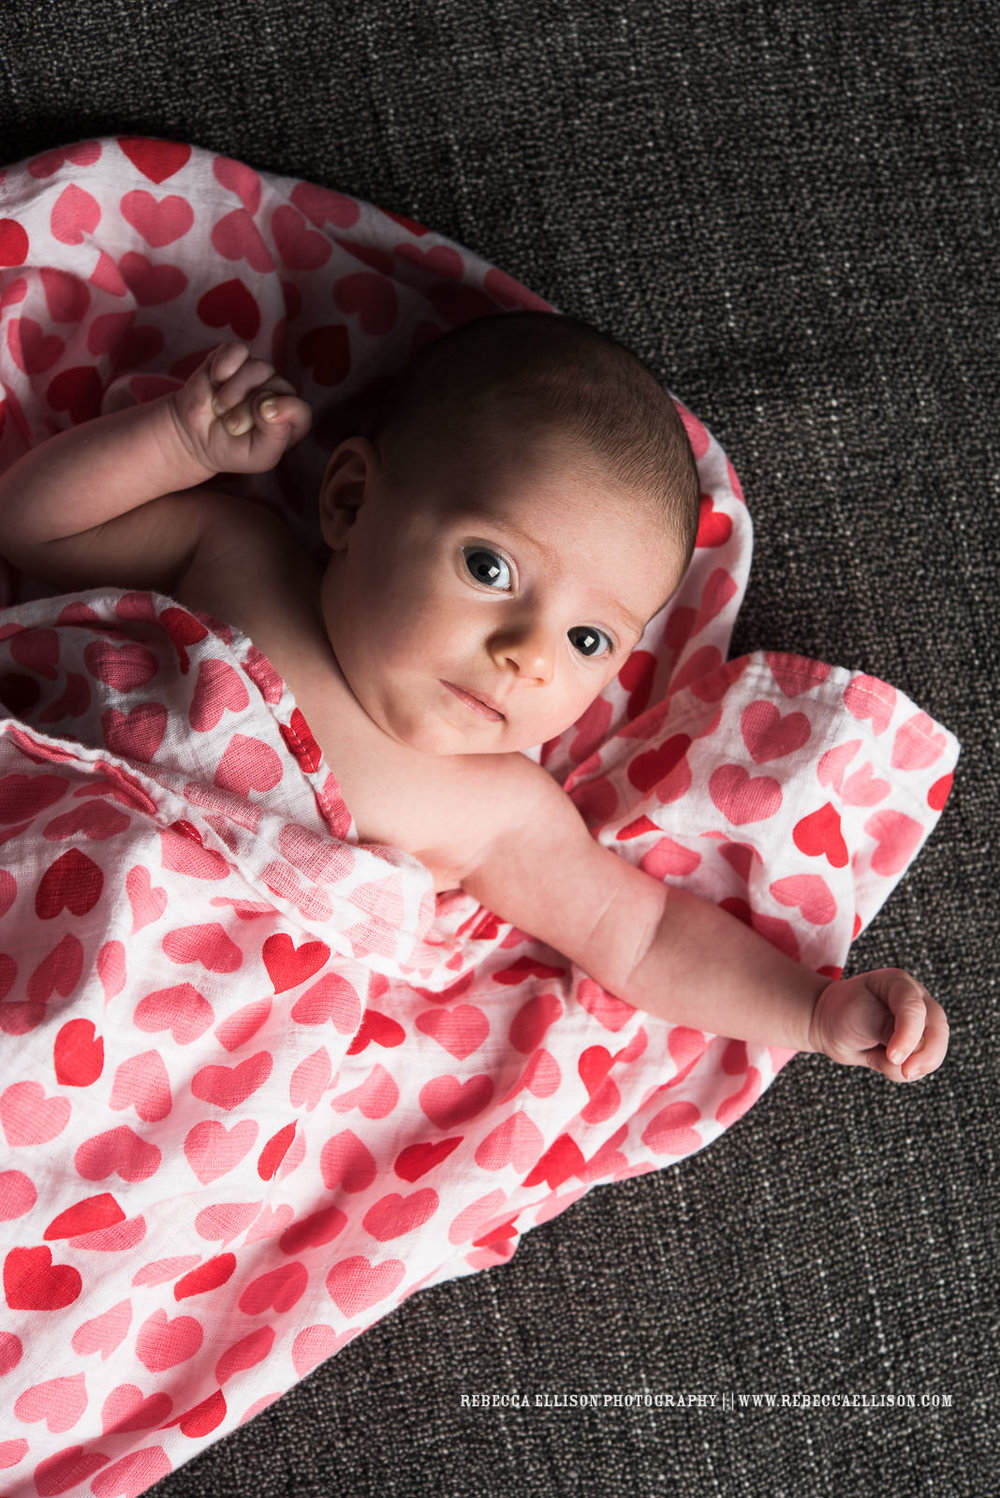 Baby Fiona has arrived!